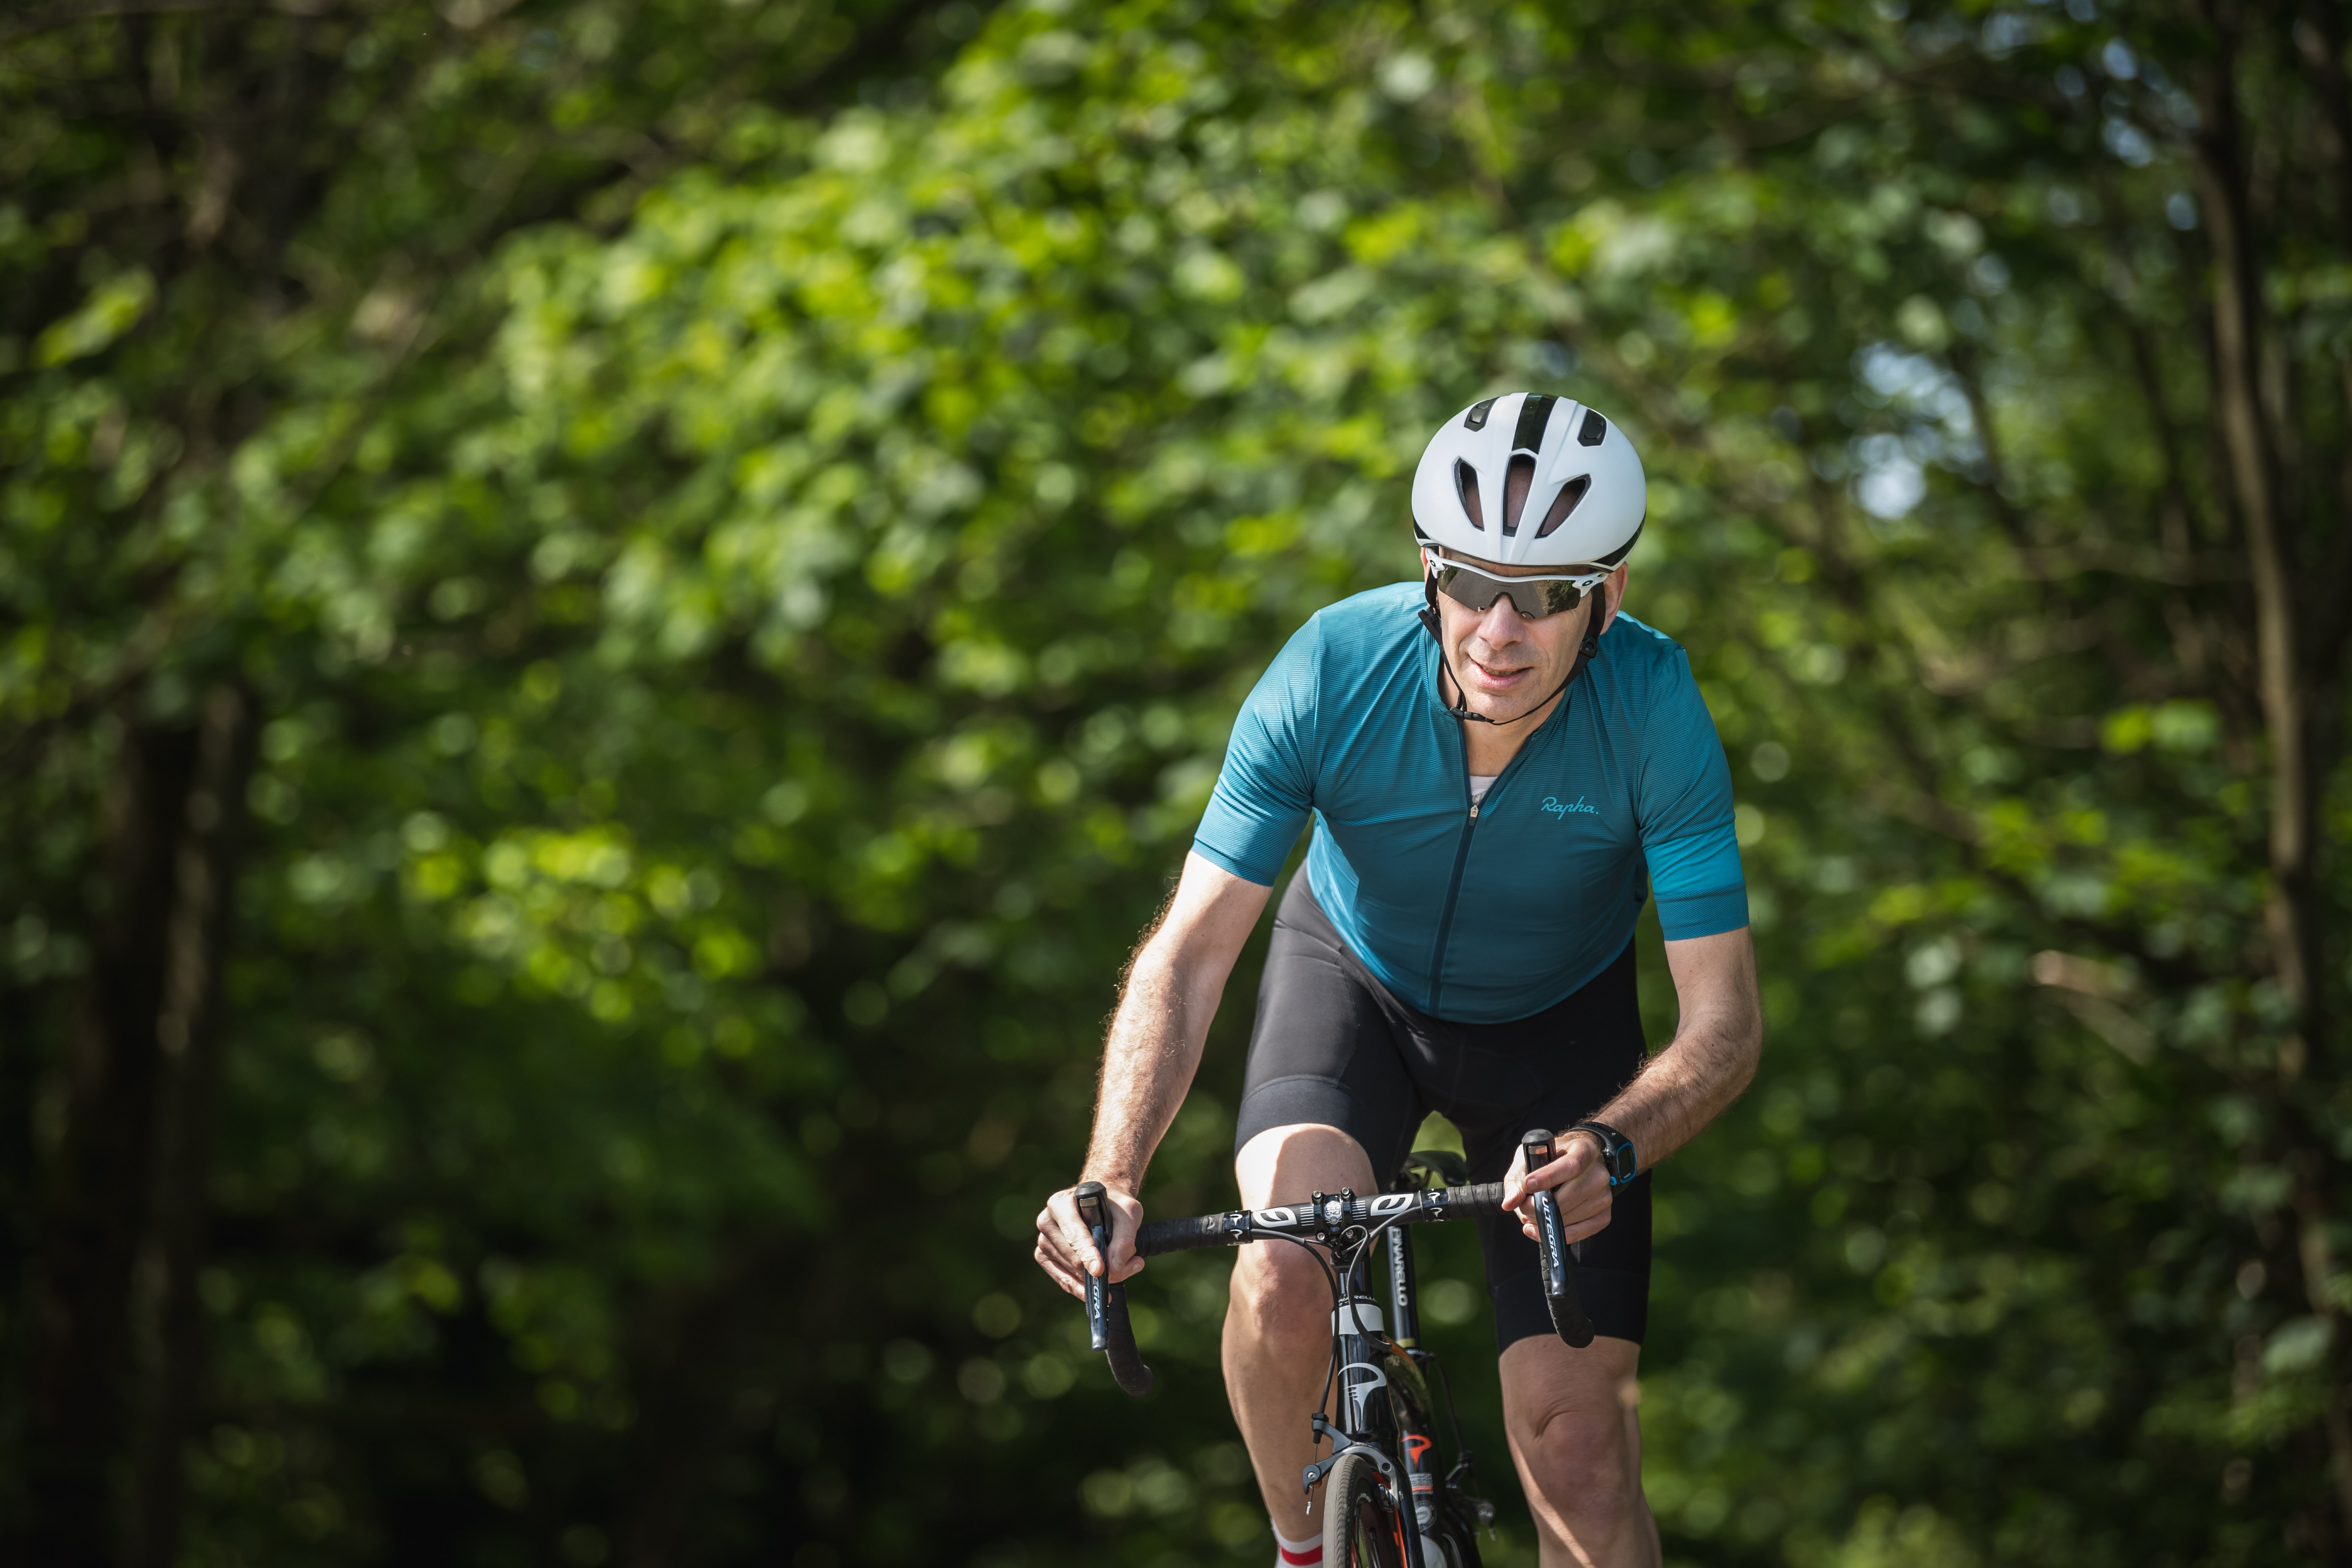 When Do Cyclists Hit Peak Form Cycling Into Your 40s 50s And Beyond Cycling Weekly The gel padding fits most women's anatomic structure. cycling weekly